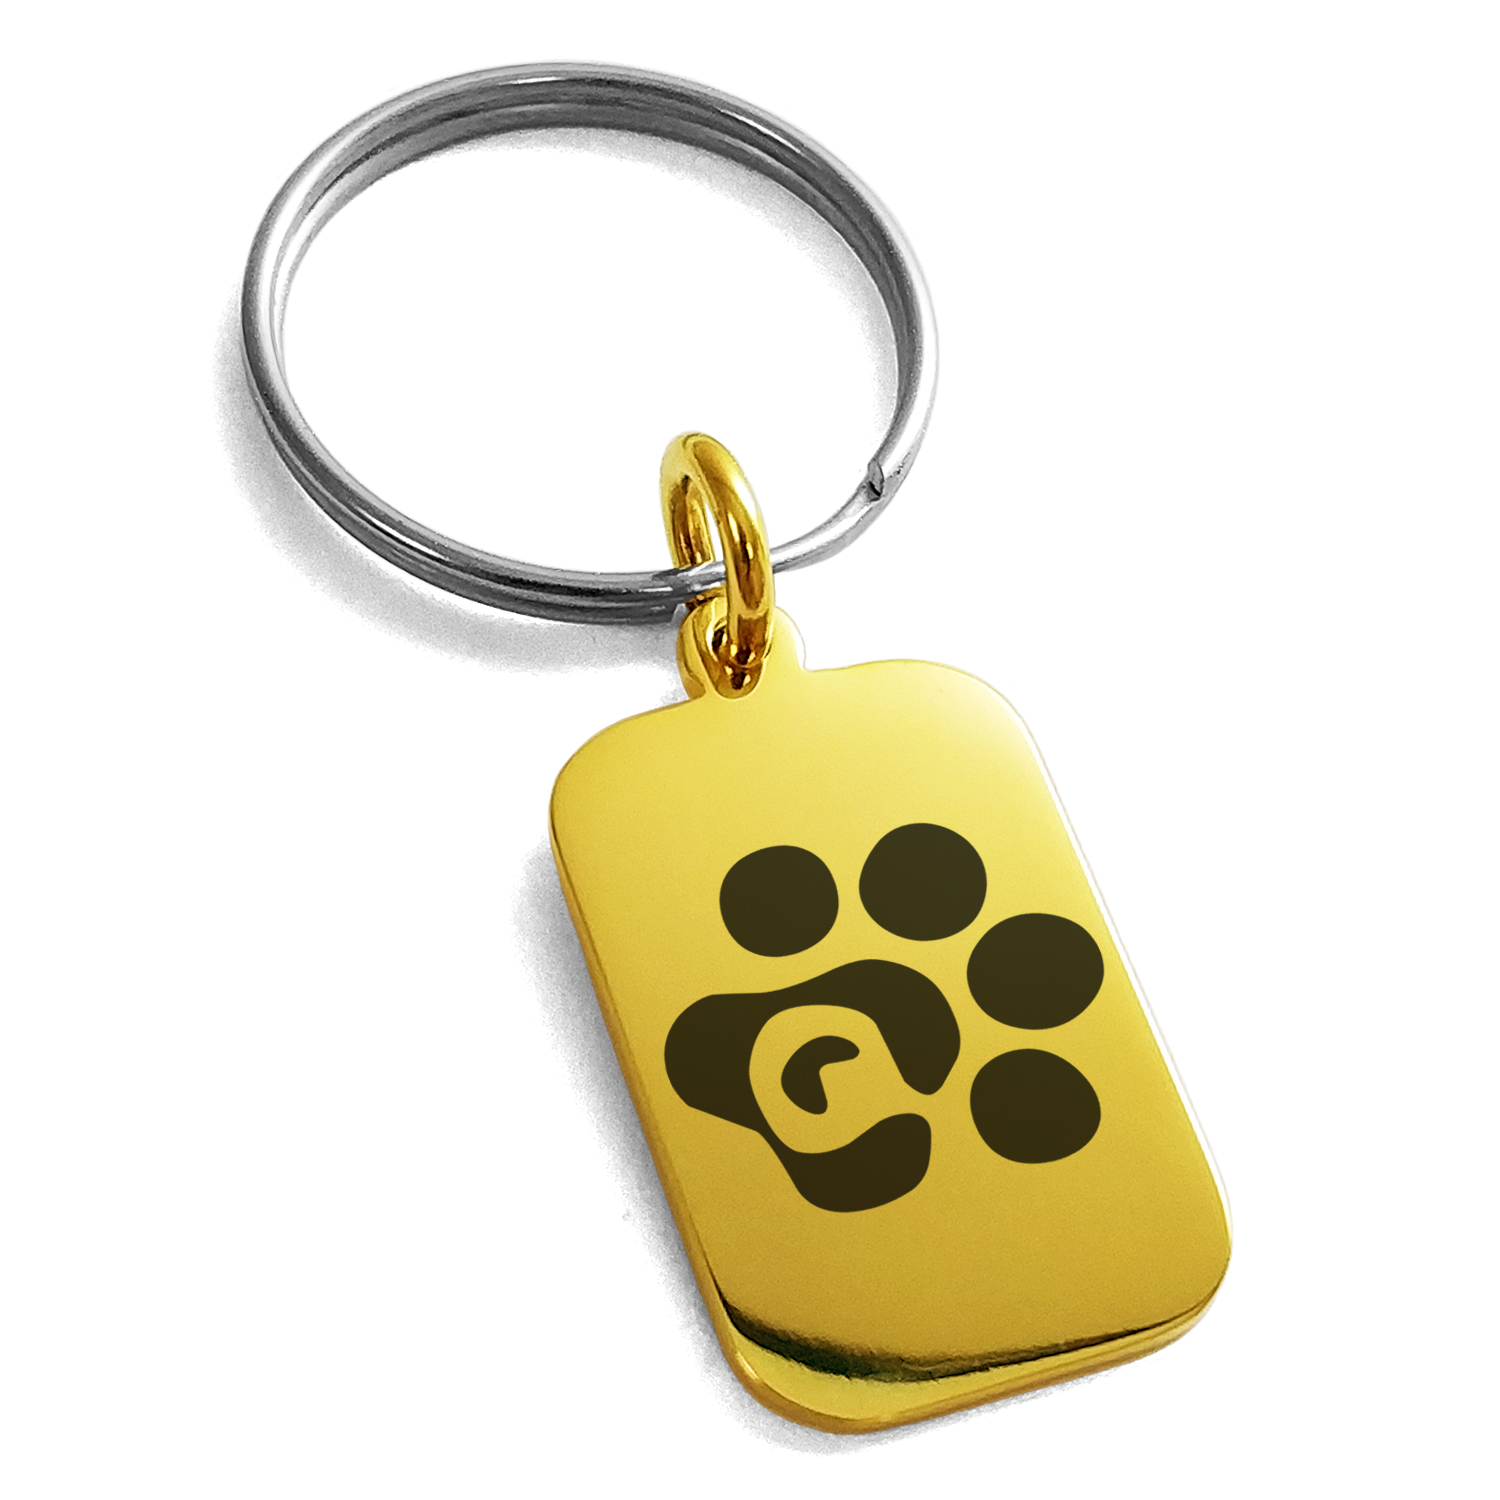 Stainless Steel Letter Q Initial Cat Dog Paws Monogram Engraved Small Rectangle Dog Tag Charm Keychain Keyring